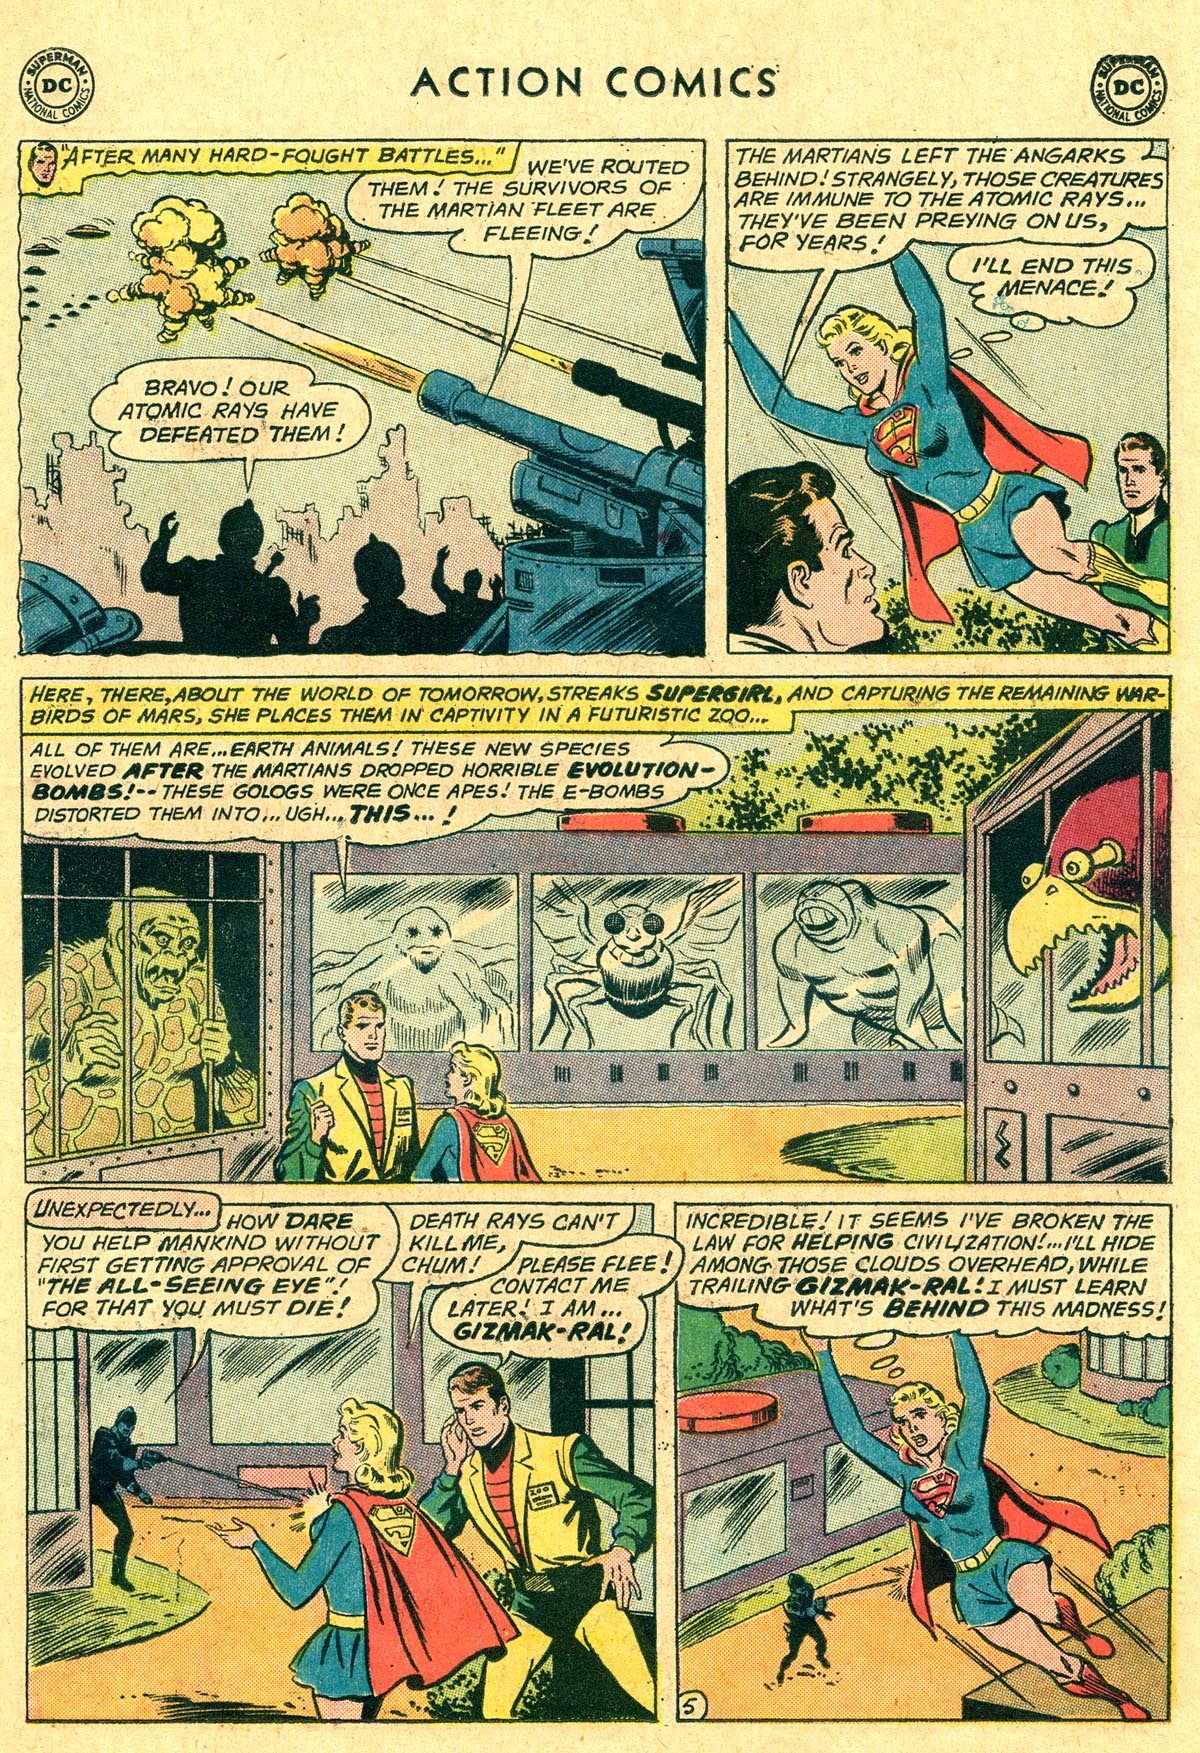 Action Comics (1938) 282 Page 22